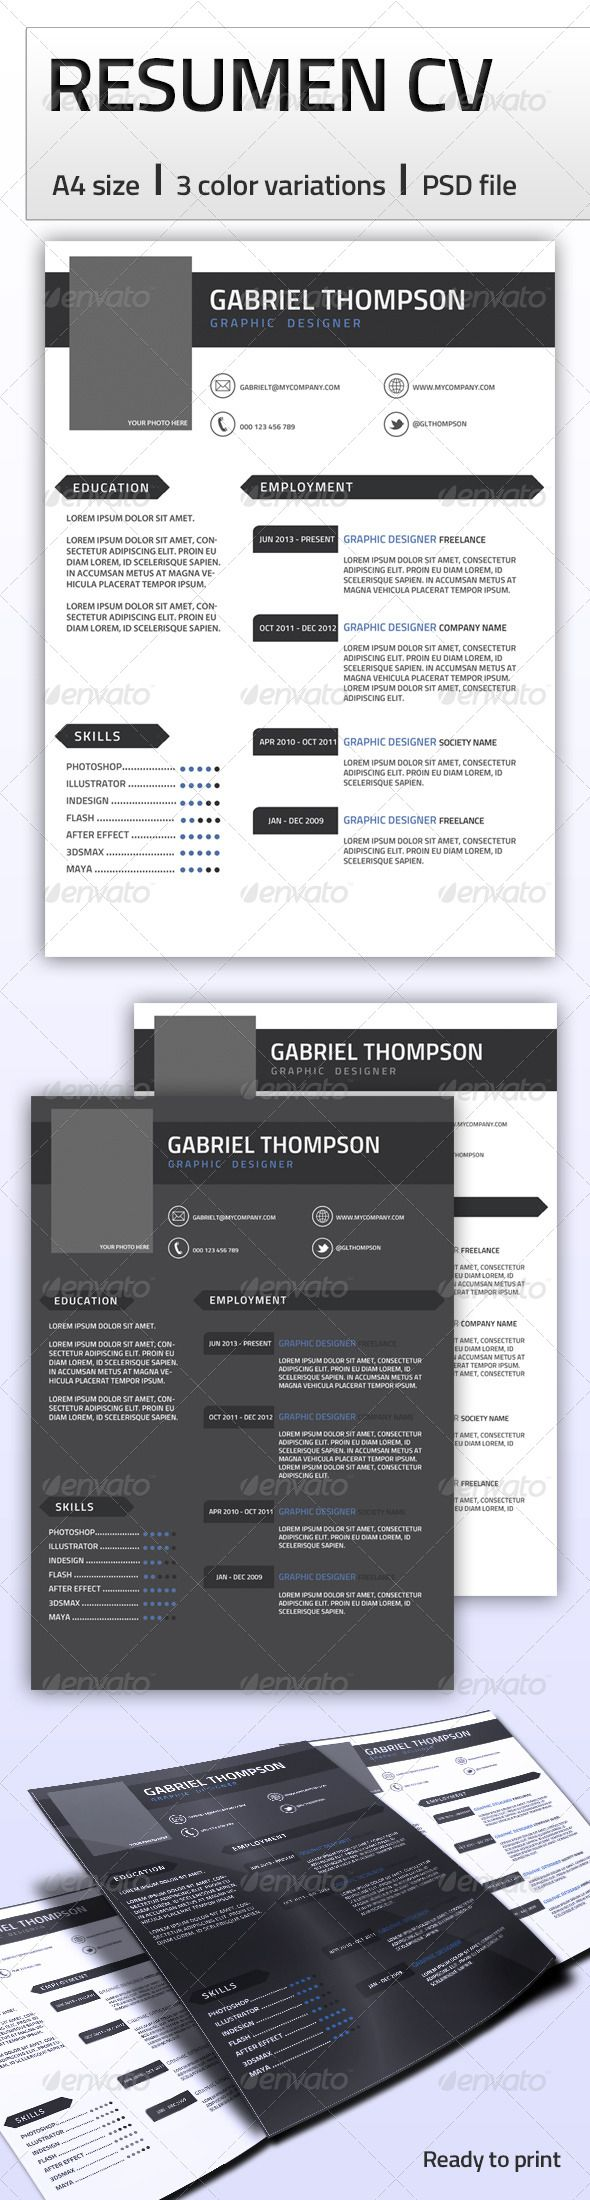 958 best Simple Resume Template images on Pinterest | Font logo ...